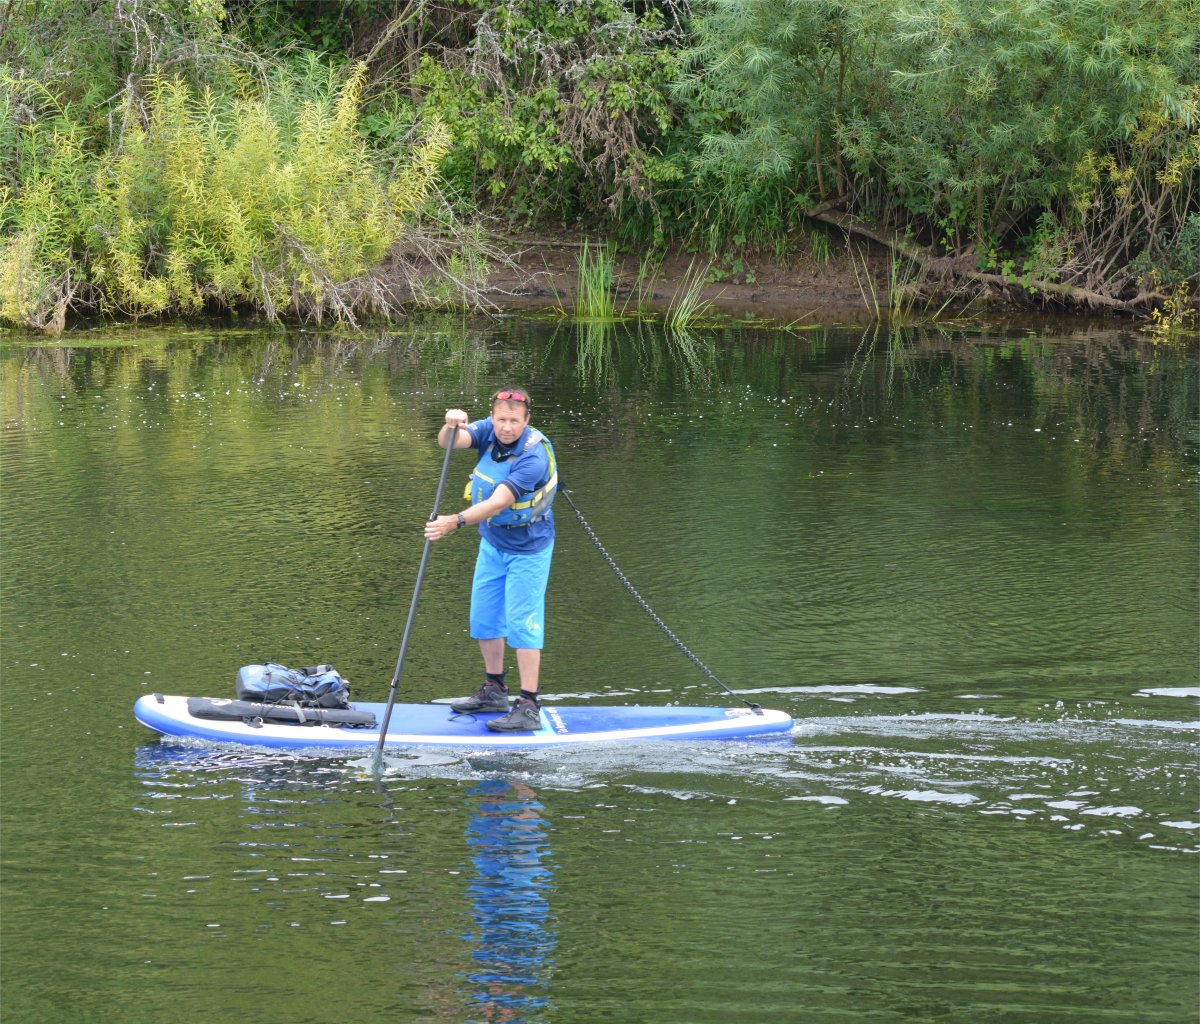 man on stand-up paddle board